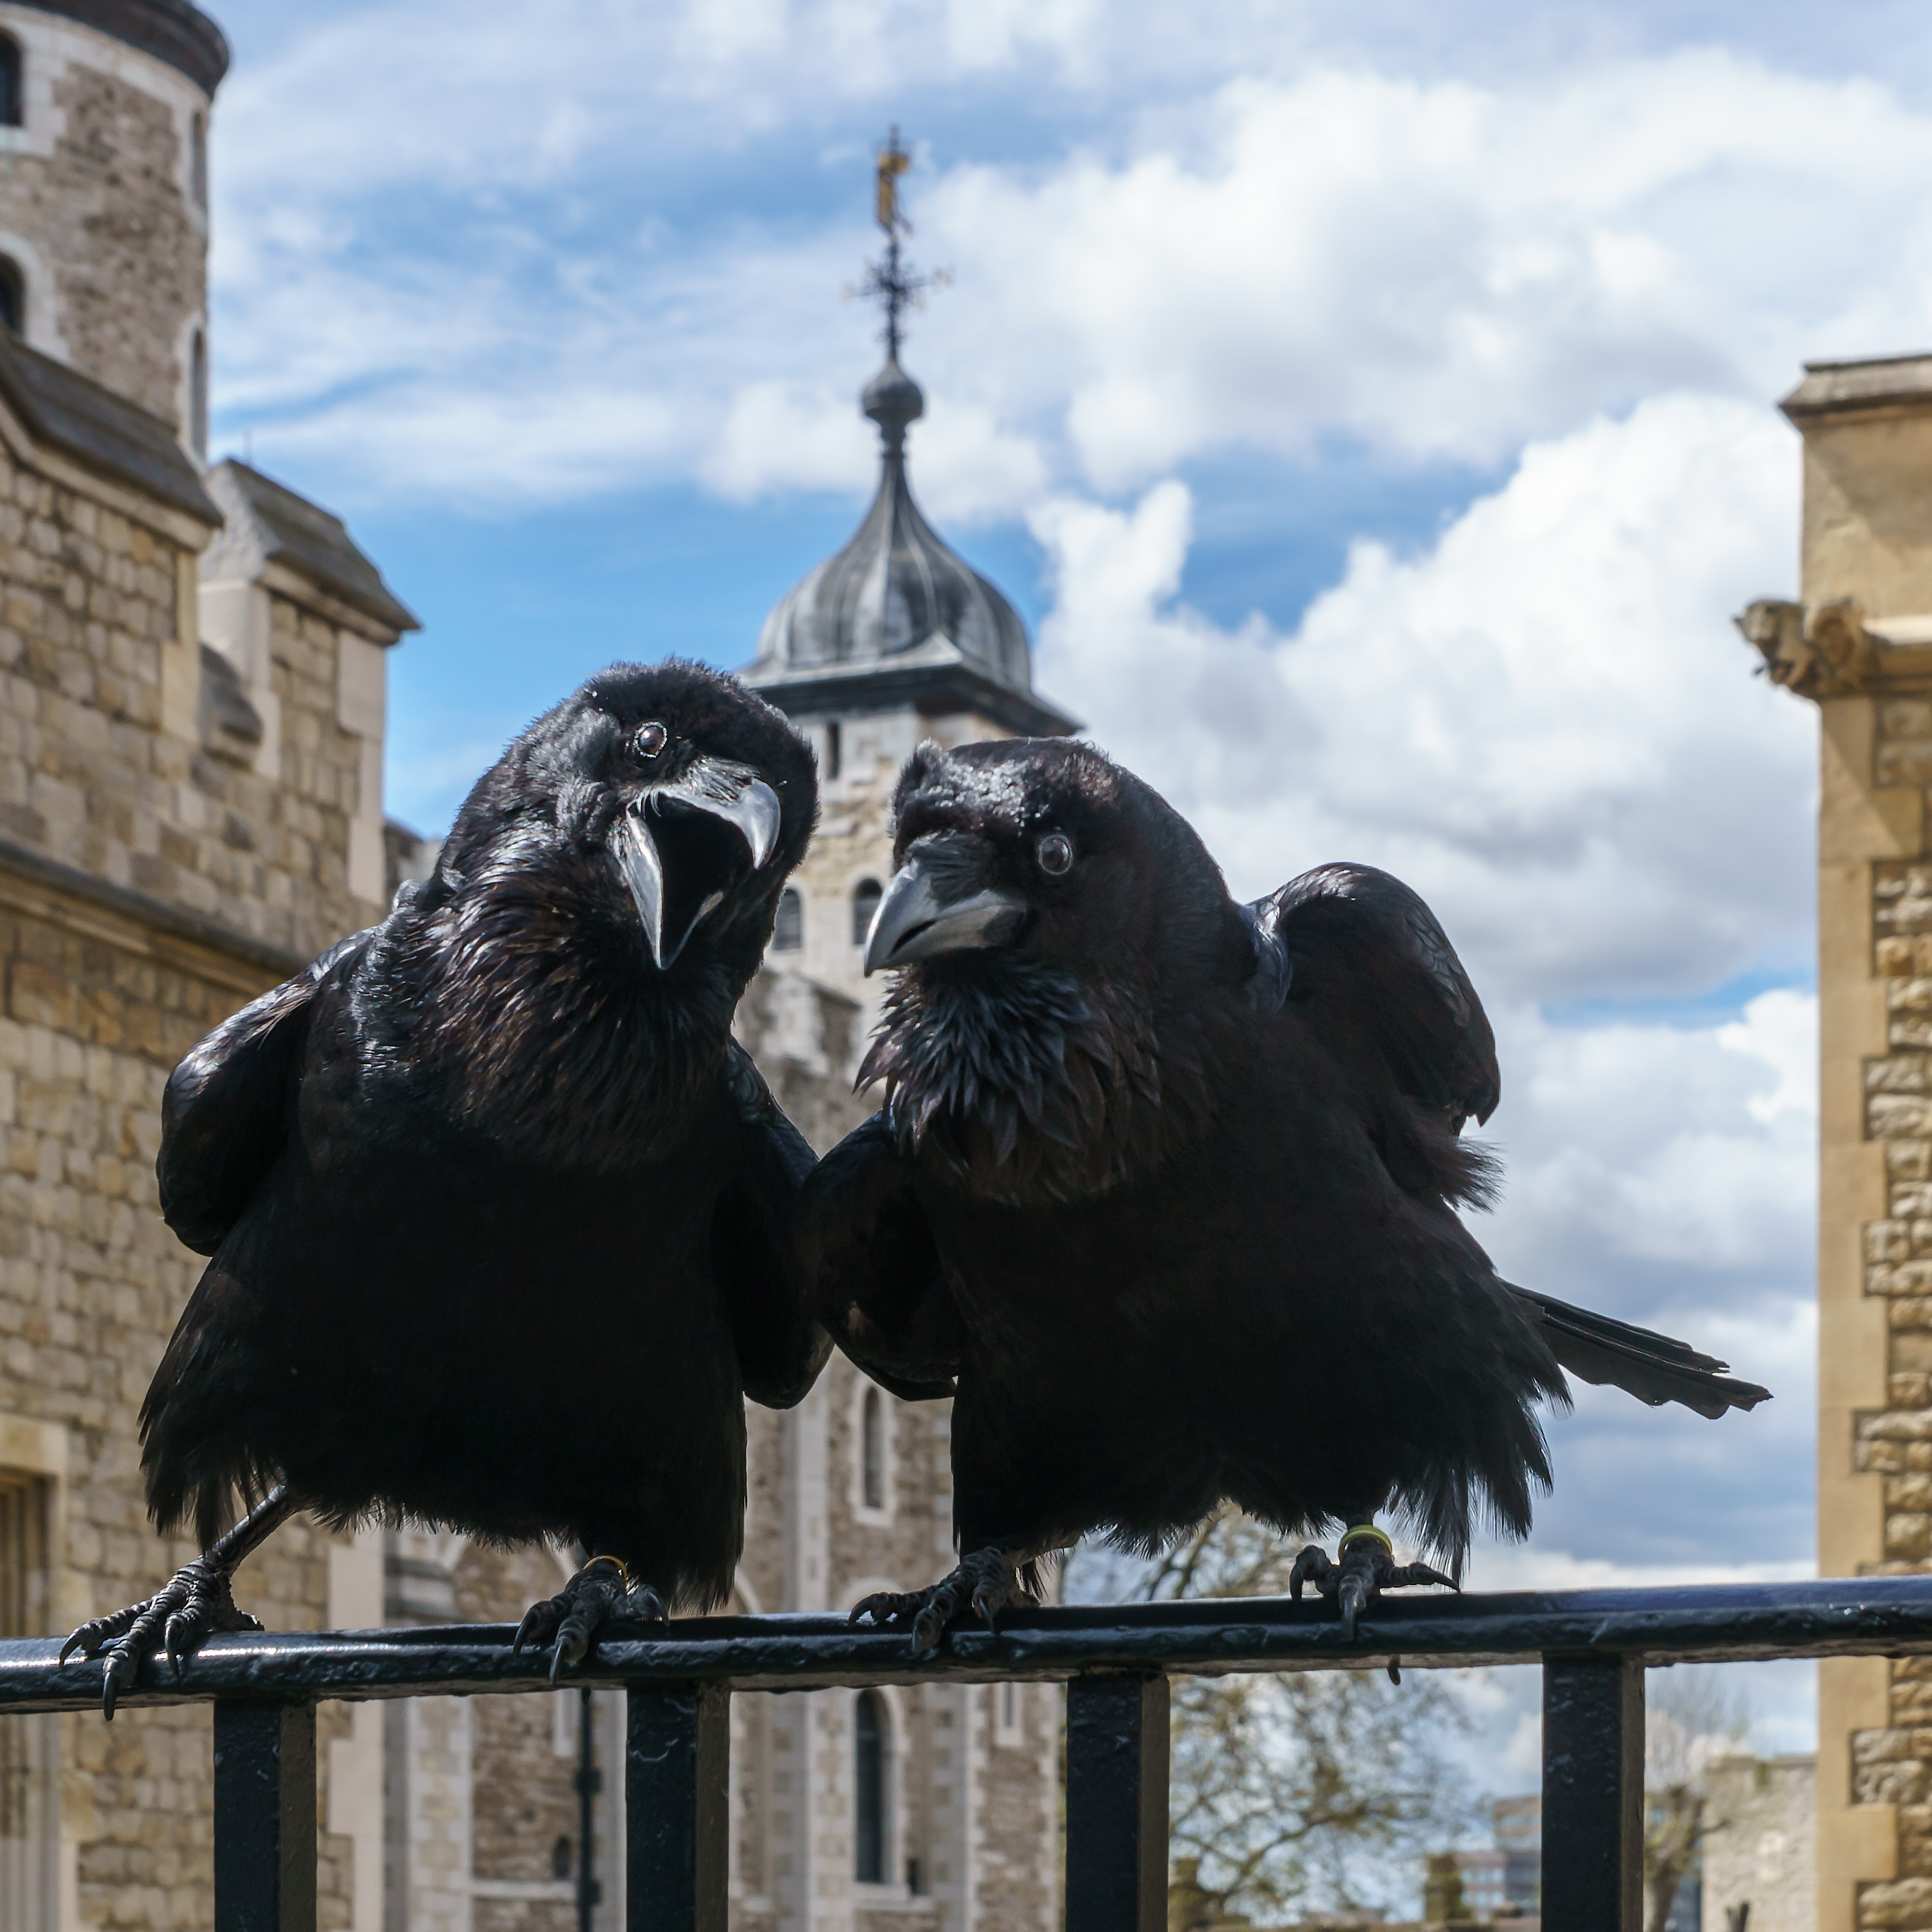 Ravens are smarter than we thought.